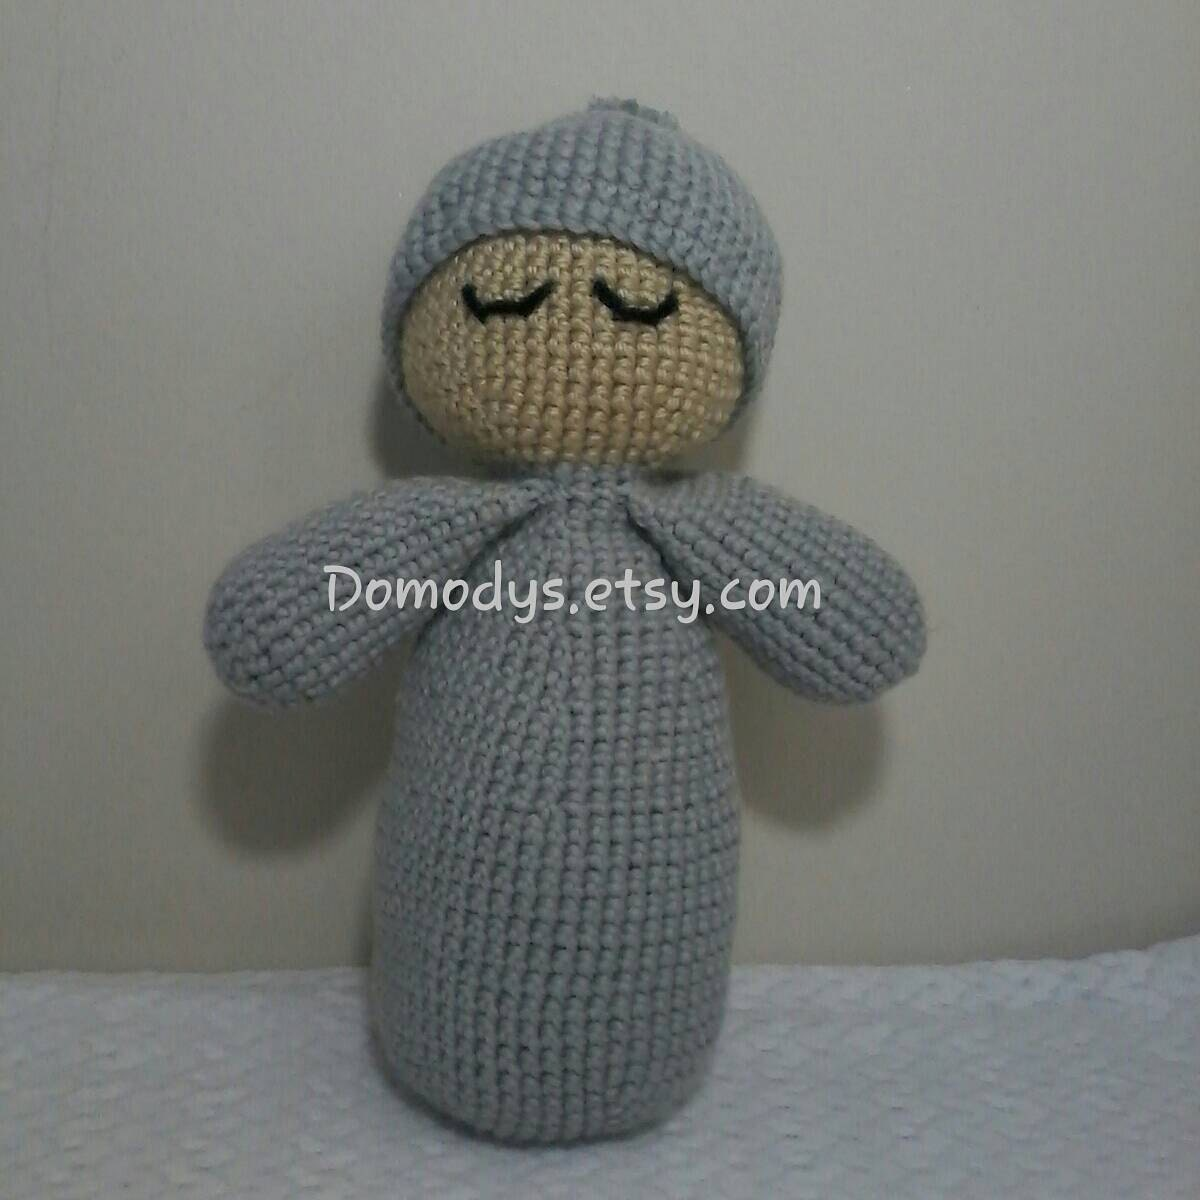 Crochet Amigurumi Head : Crochet Sleepy Head Baby First Doll Amigurumi Kids Toy